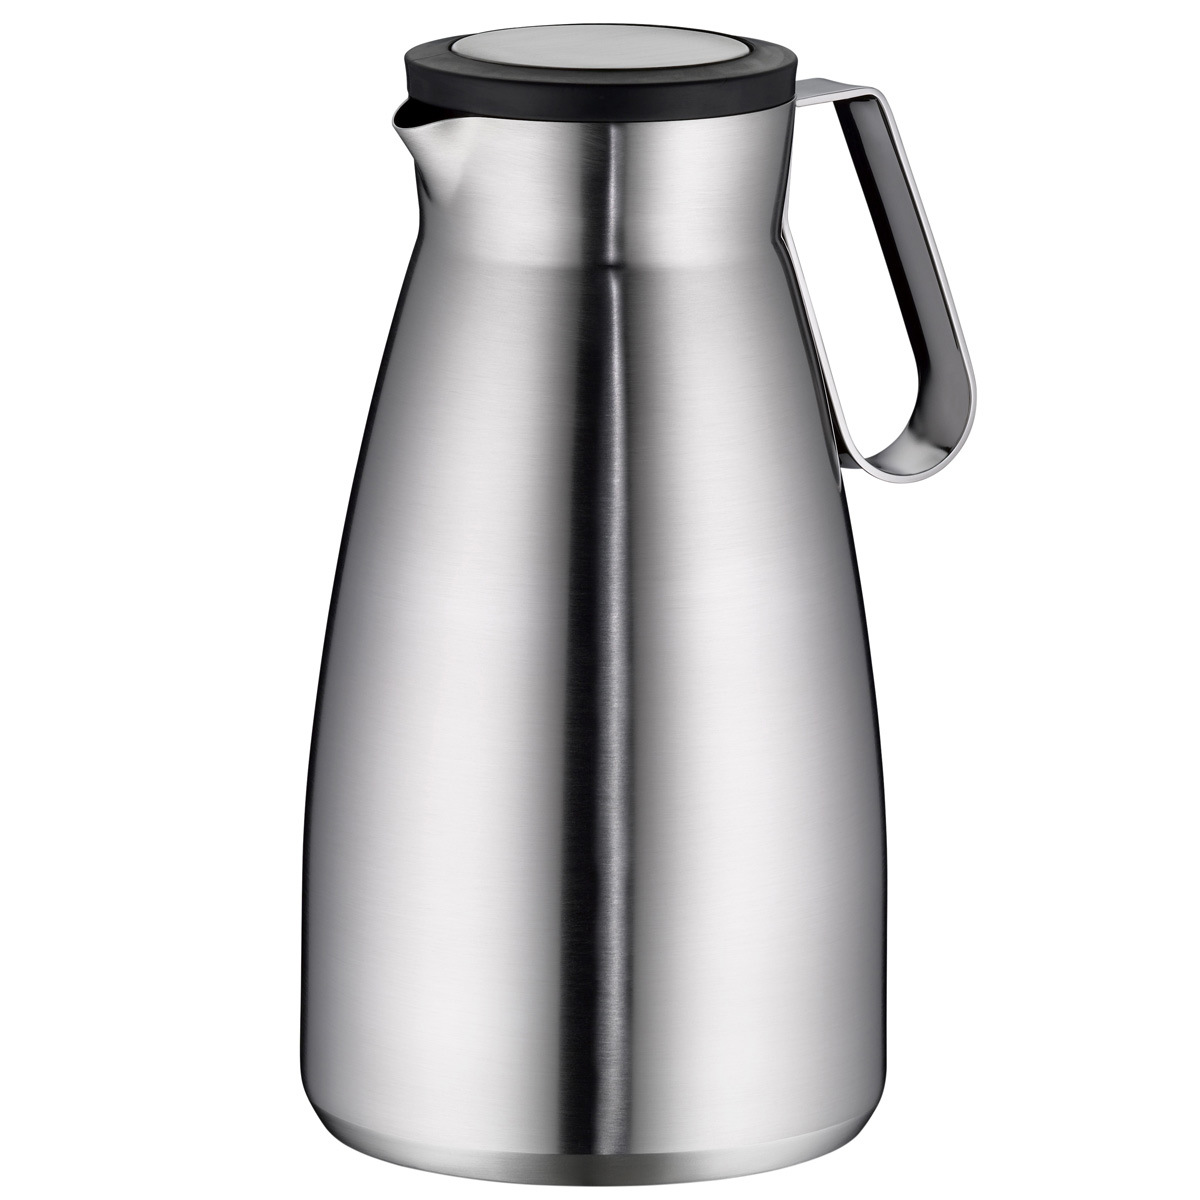 alfi vacuum carafe mokka top therm thermal carafe coffepot screw stopper stainless steel 1. Black Bedroom Furniture Sets. Home Design Ideas